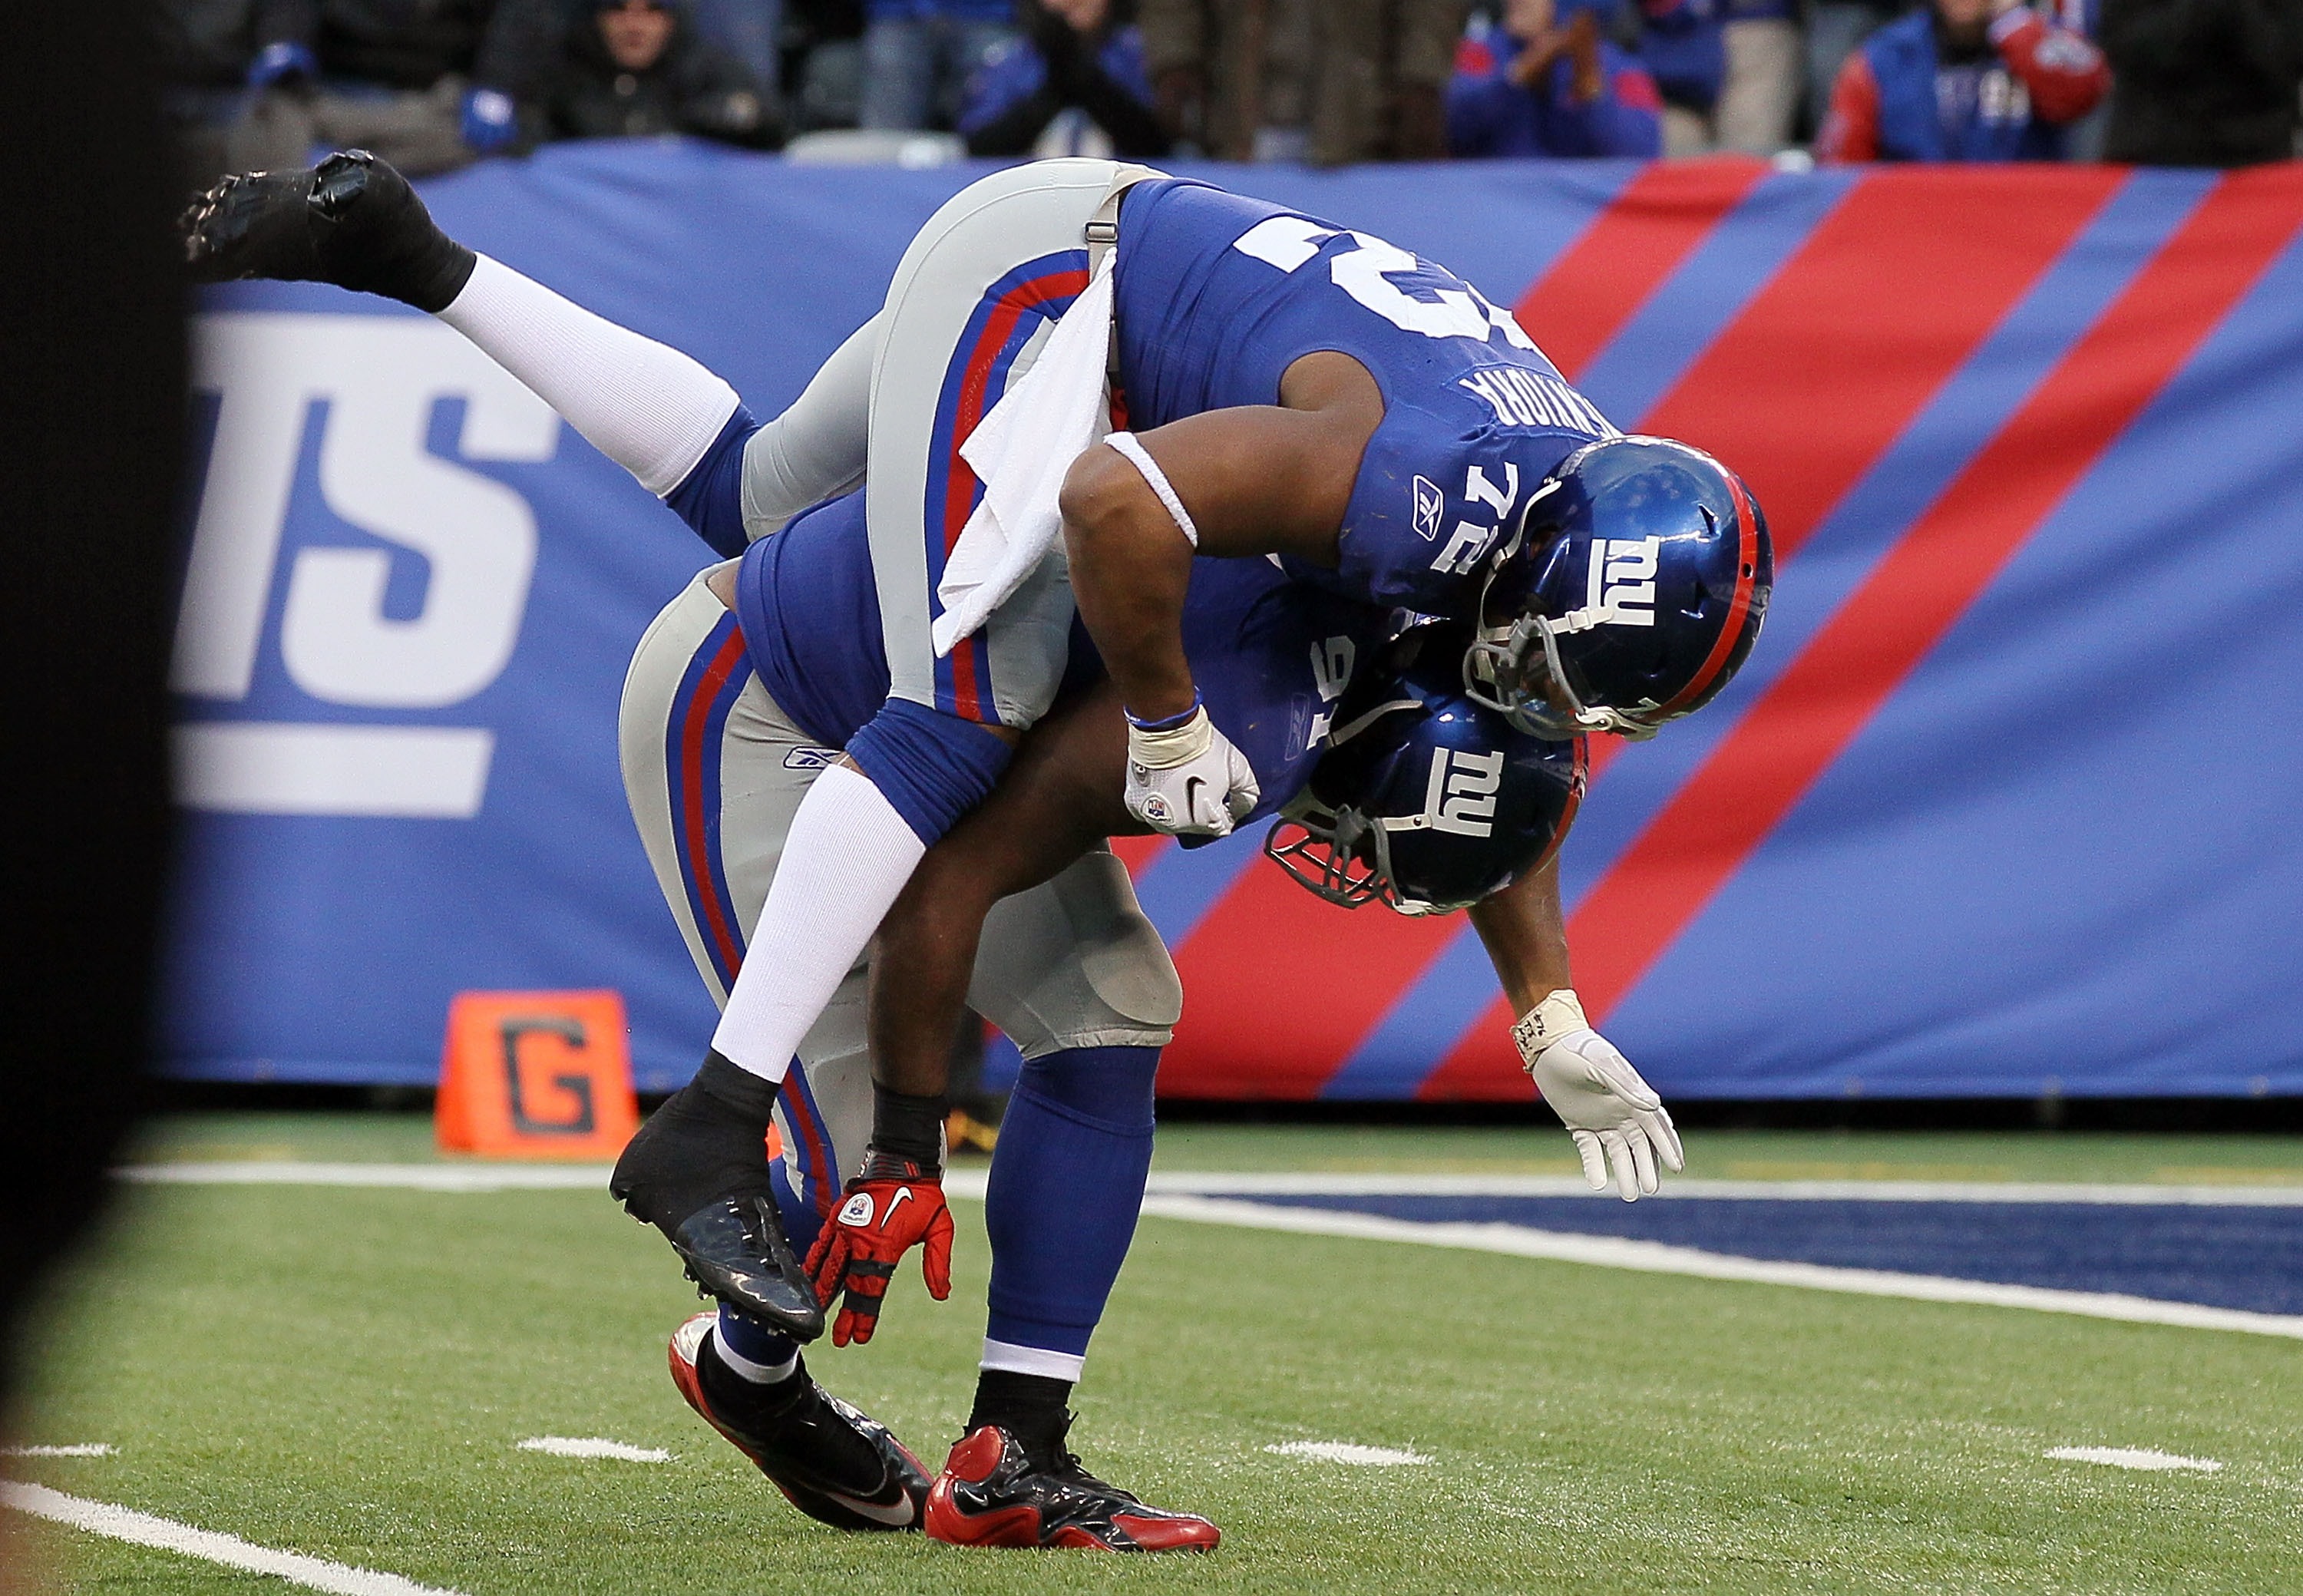 EAST RUTHERFORD, NJ - DECEMBER 05:  Justin Tuck #91 of the New York Giants celebrates with teammate Osi Umenyiora #72 after forcing a fumble against Donovan McNabb (not pictured) of the Washington Redskins during the fourth quarter on December 5, 2010 at